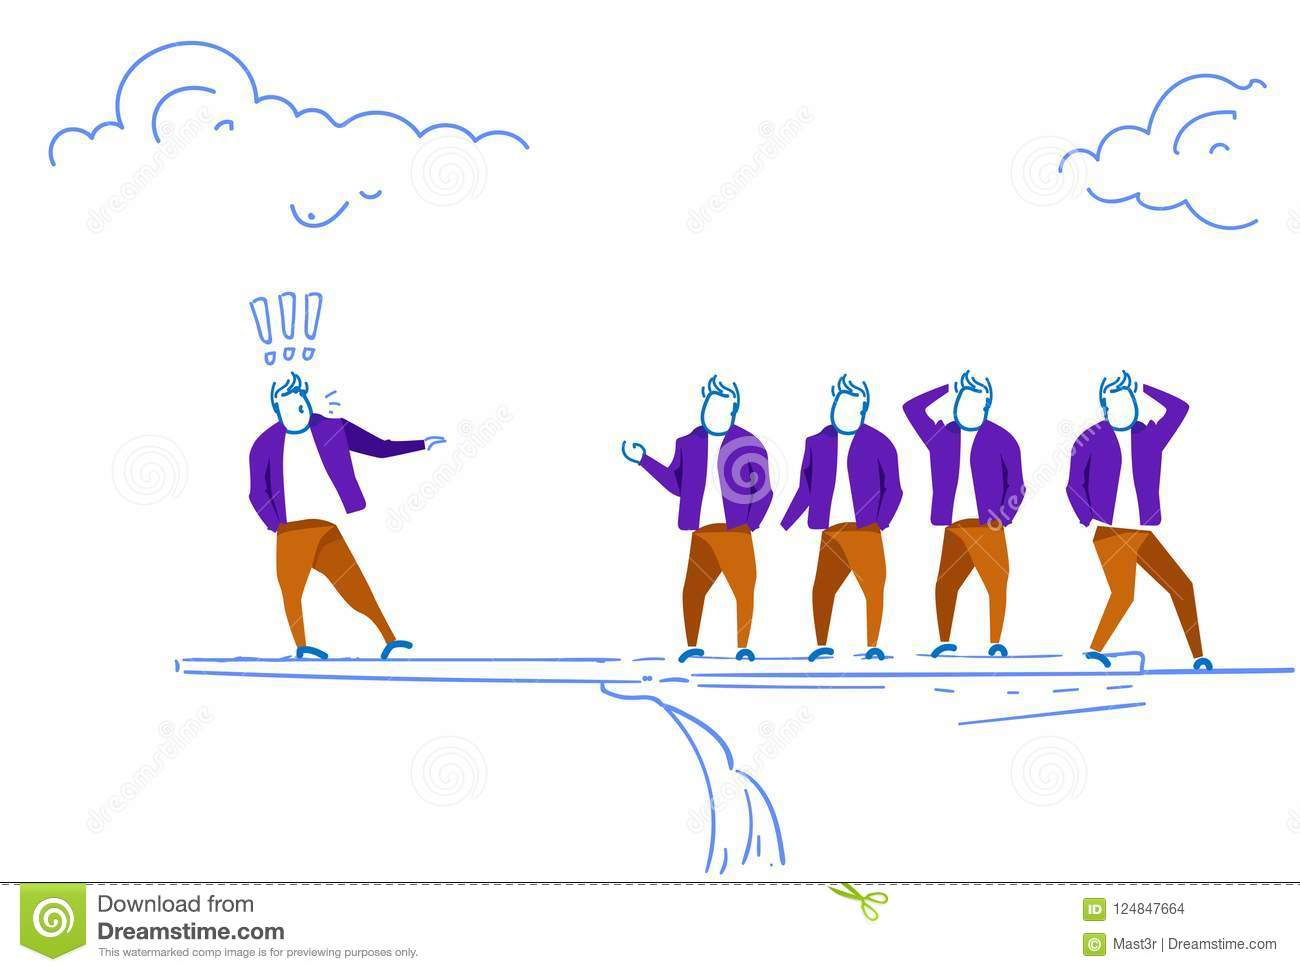 Businessman leader staying edge cliff exclamation marks doing advertisement business team brainstorming concept sketch